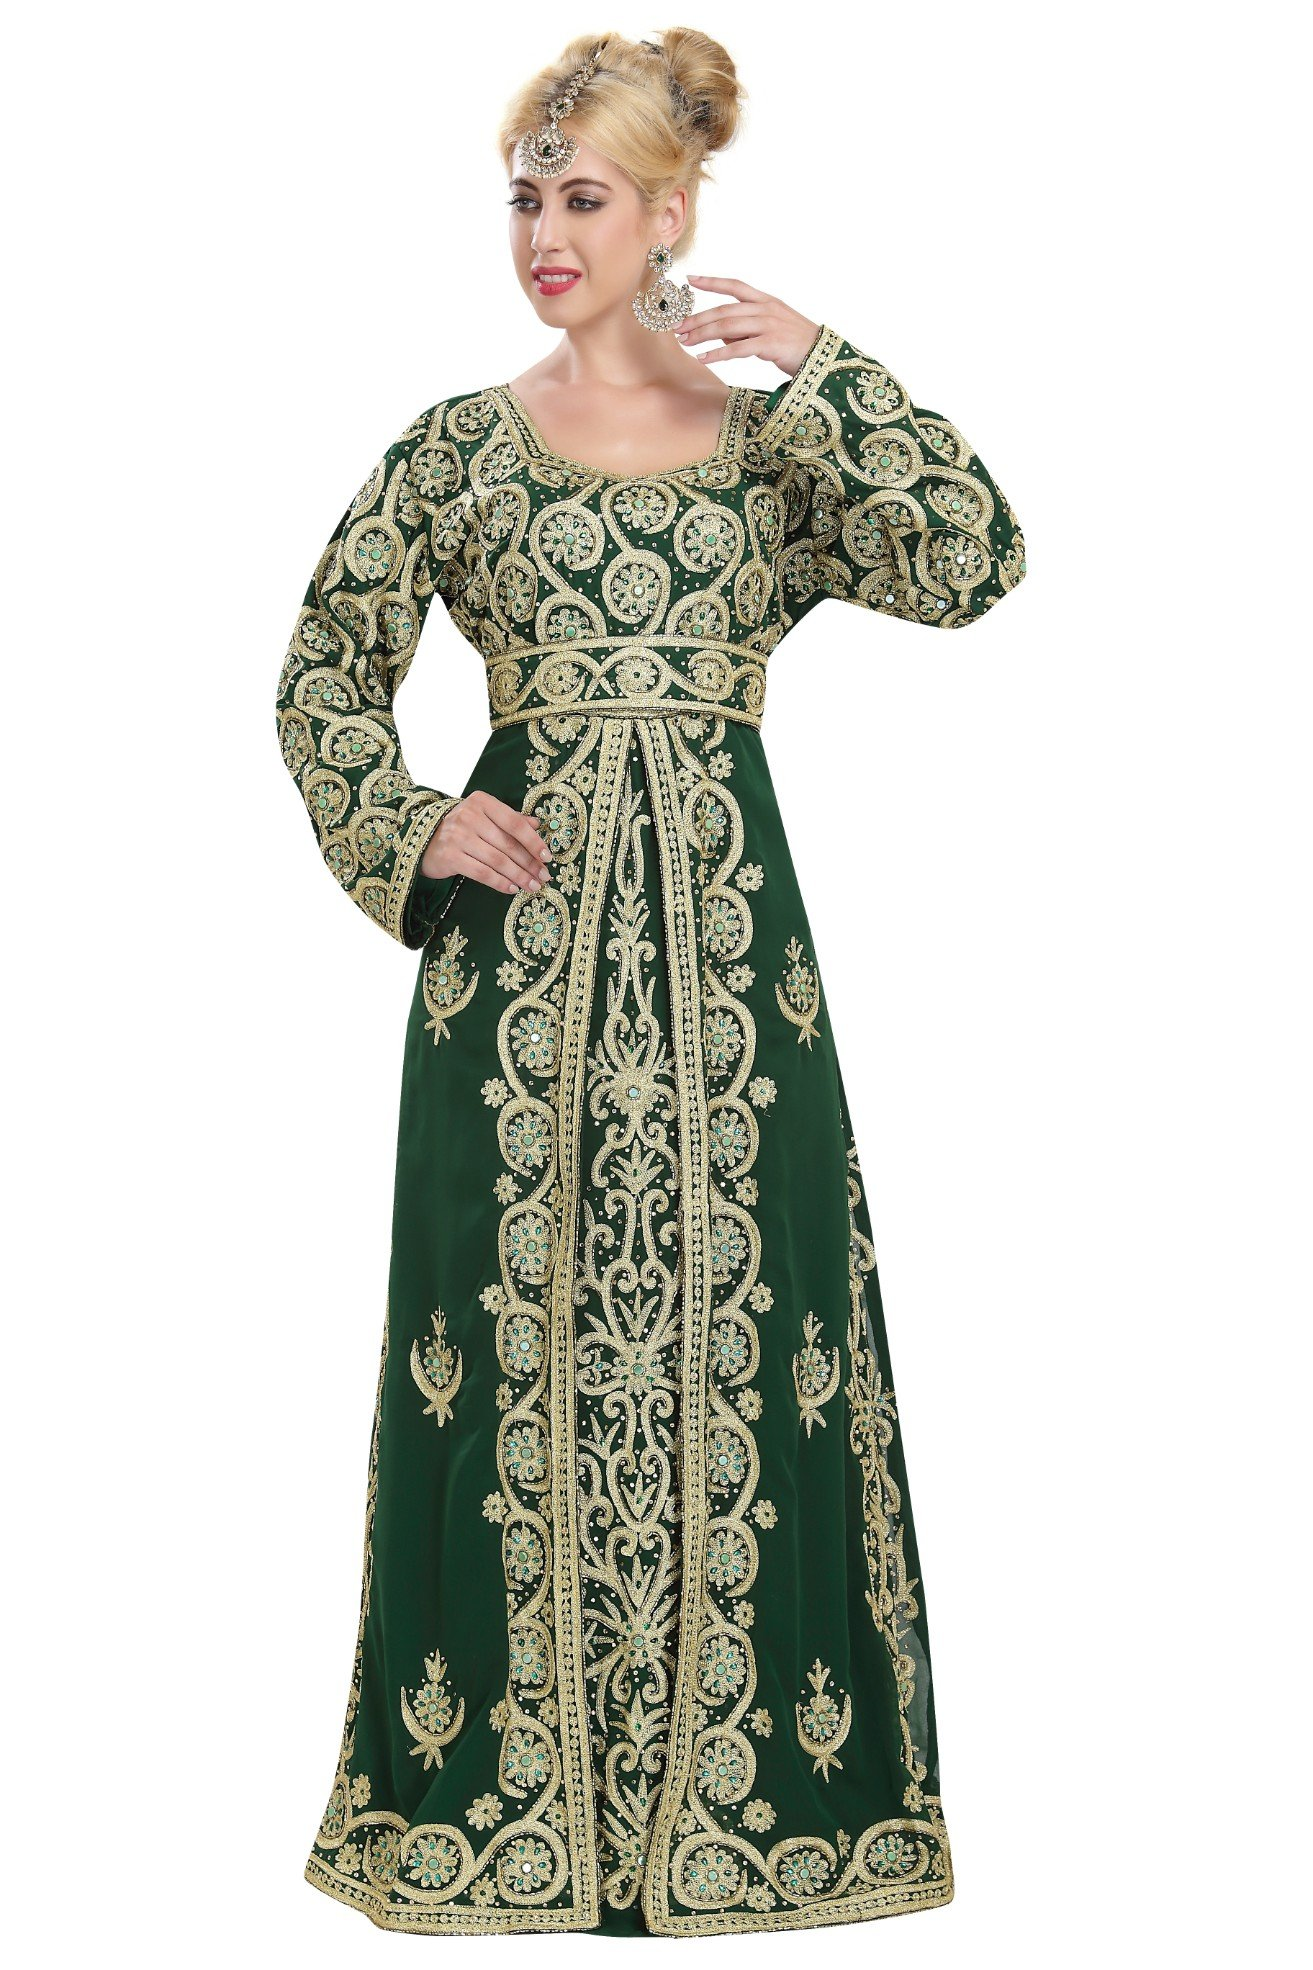 Moroccan Traditional Party Wear Maghribi Takchita Caftan Dress For Women 5830 (S)